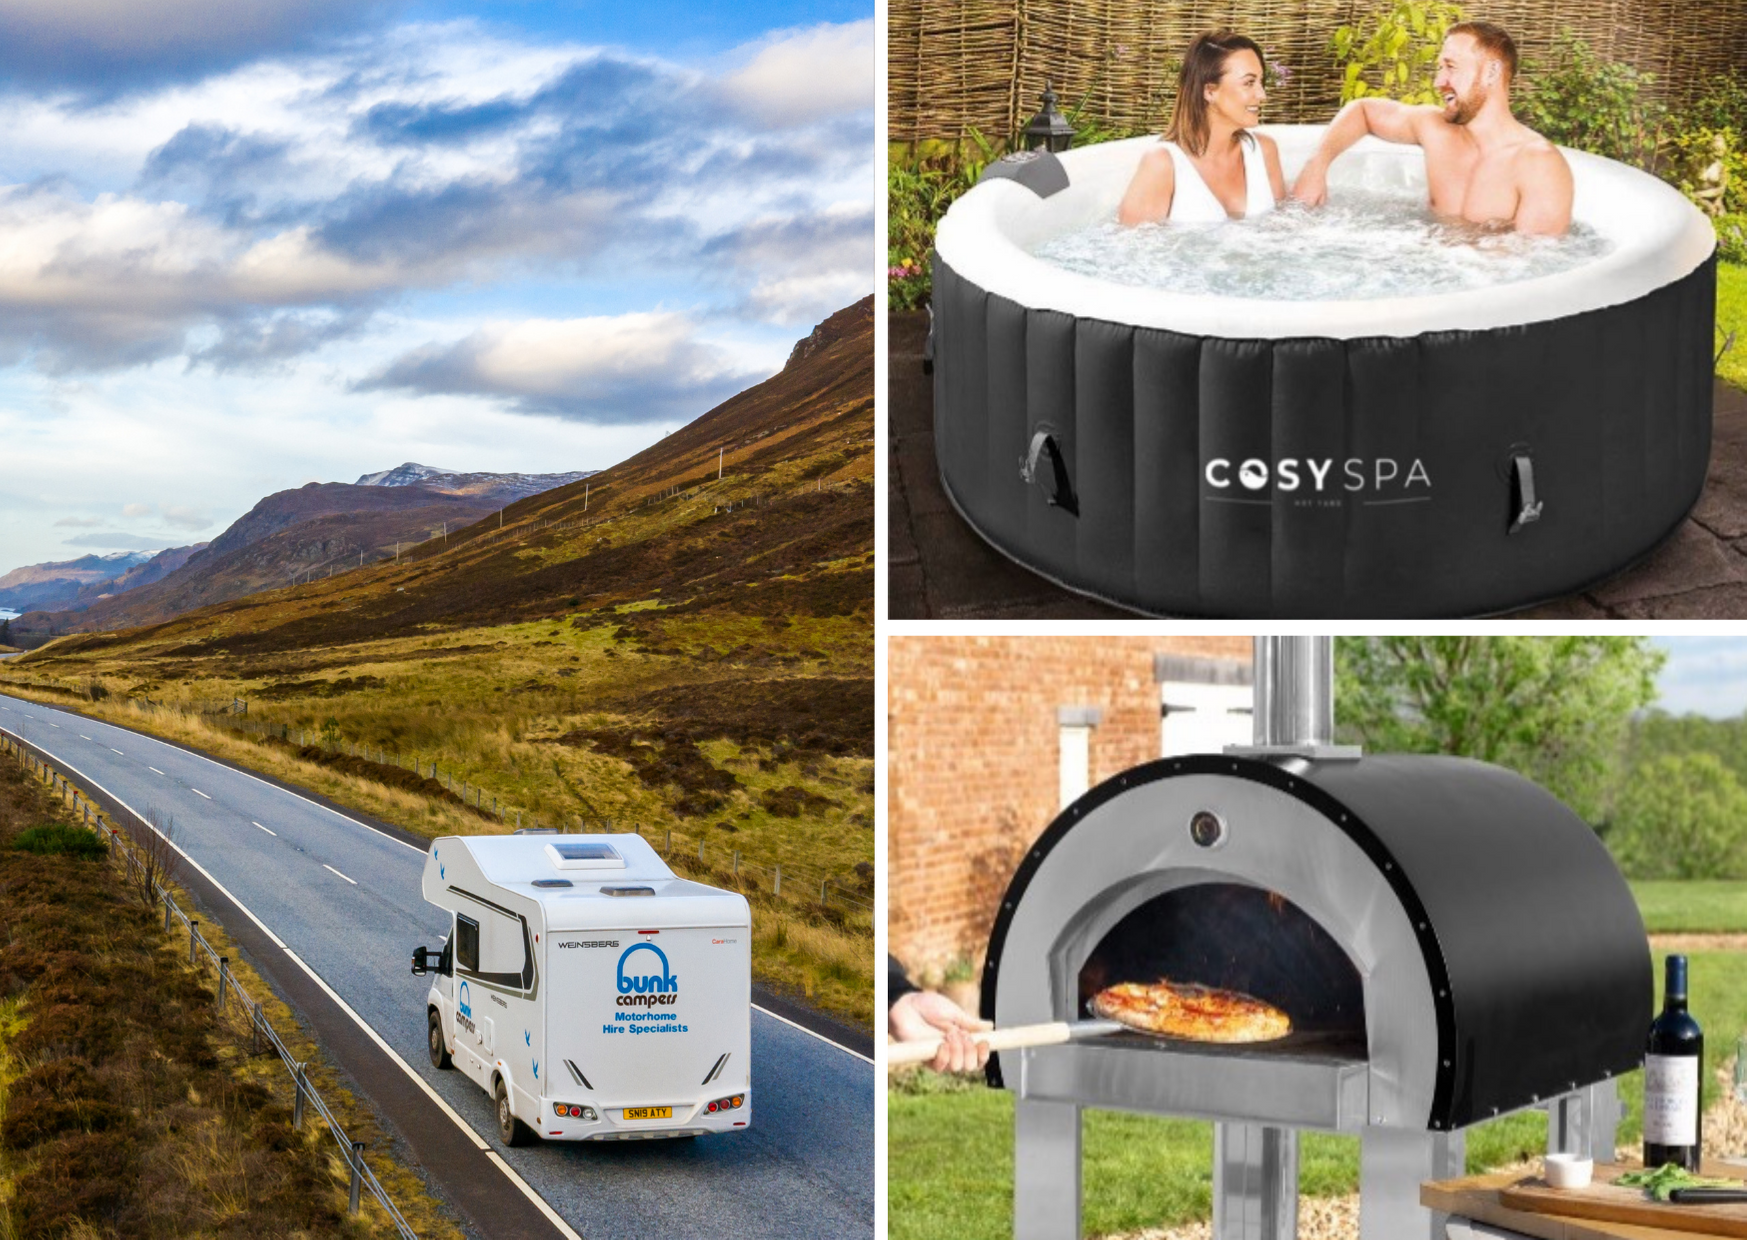 Win a campervan holiday and upgrade your garden!